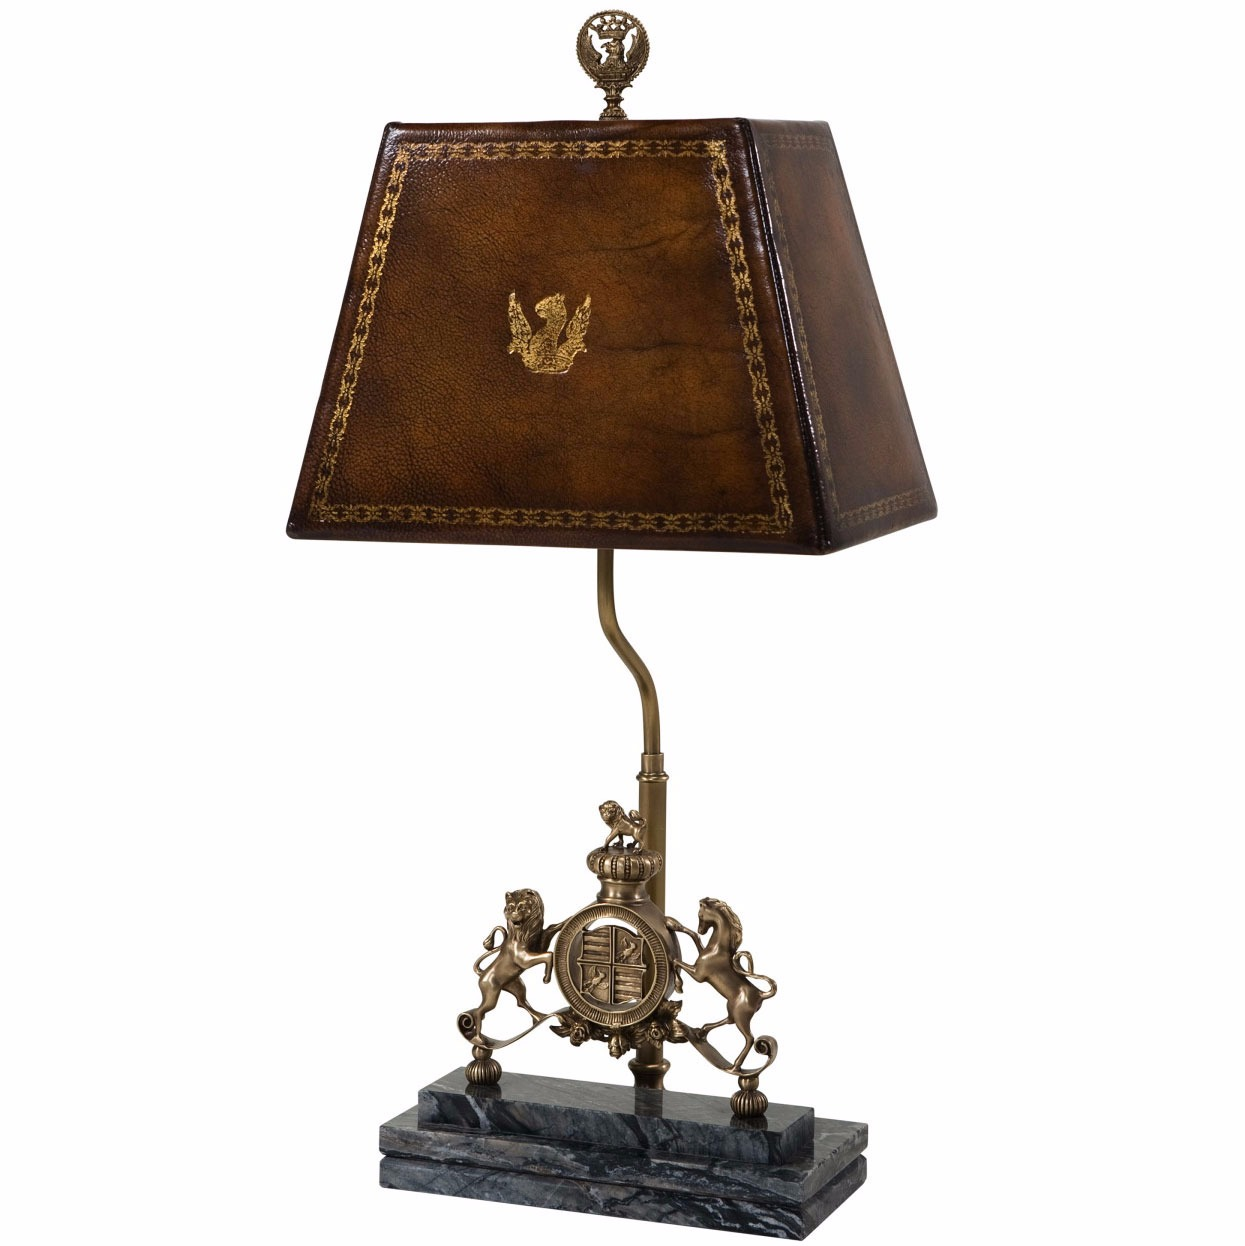 A finely cast brass table lamp with hand sewn leather shade